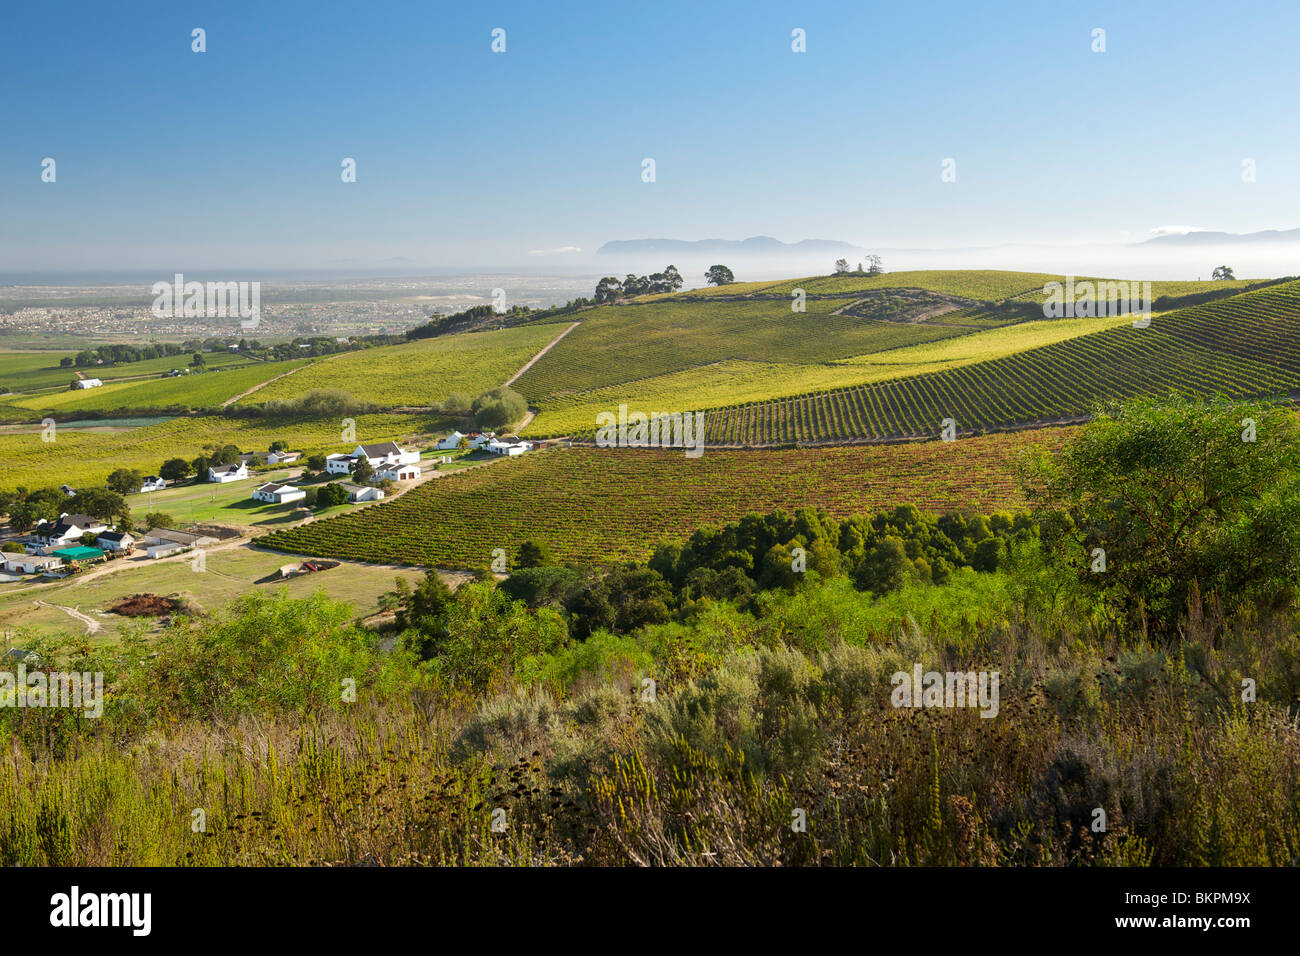 View across vineyards of the Stellenbosch district, Western Cape Province, South Africa. - Stock Image